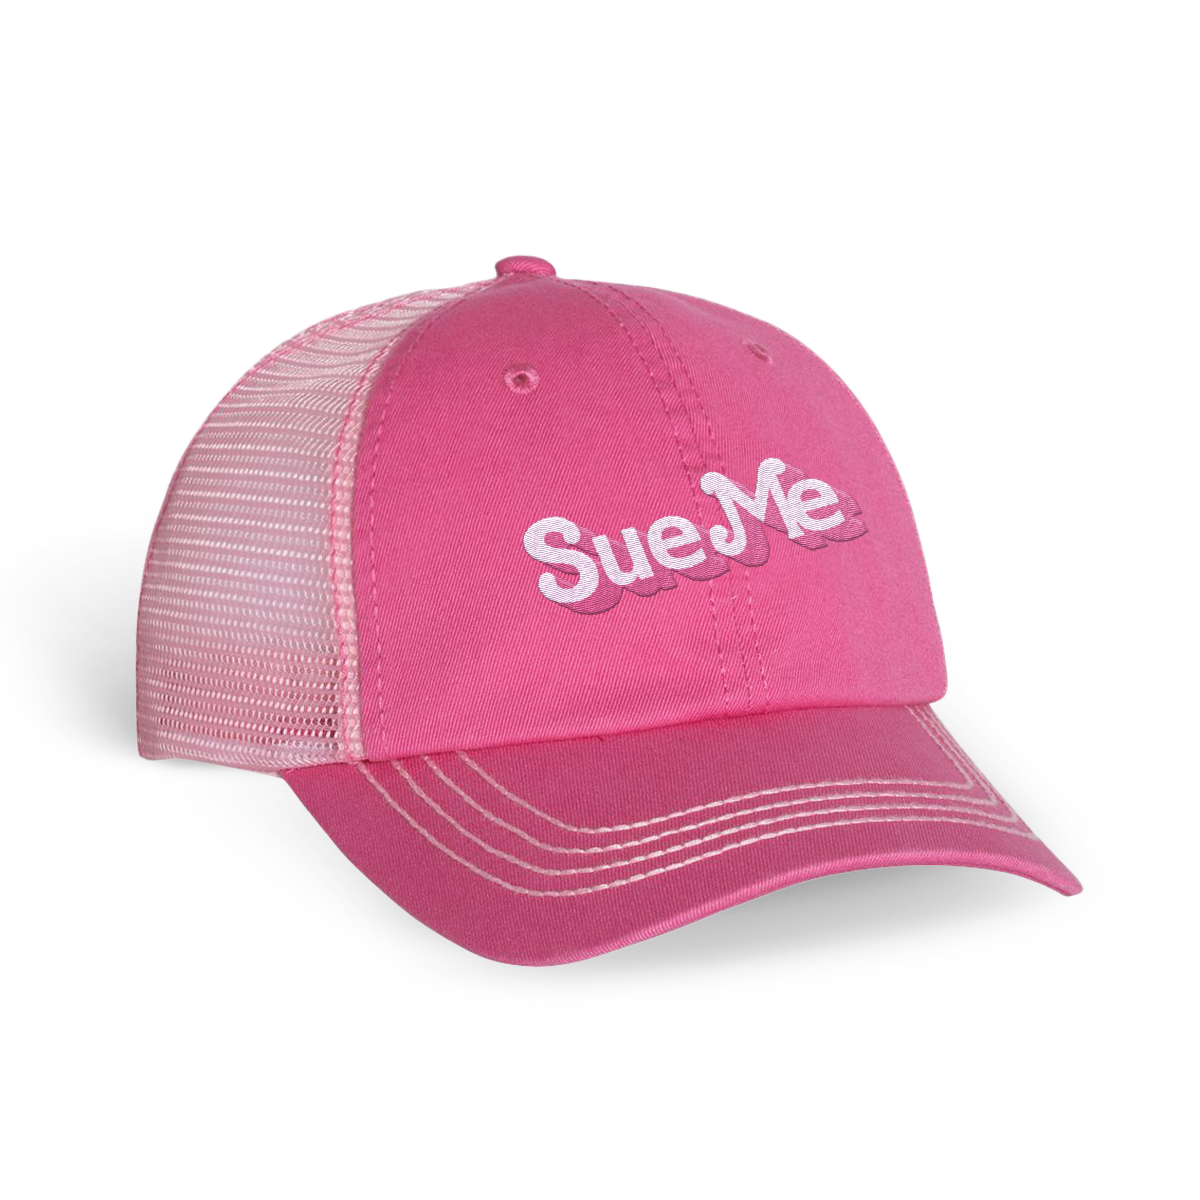 Sue Me Trucker Hat - Sabrina Carpenter